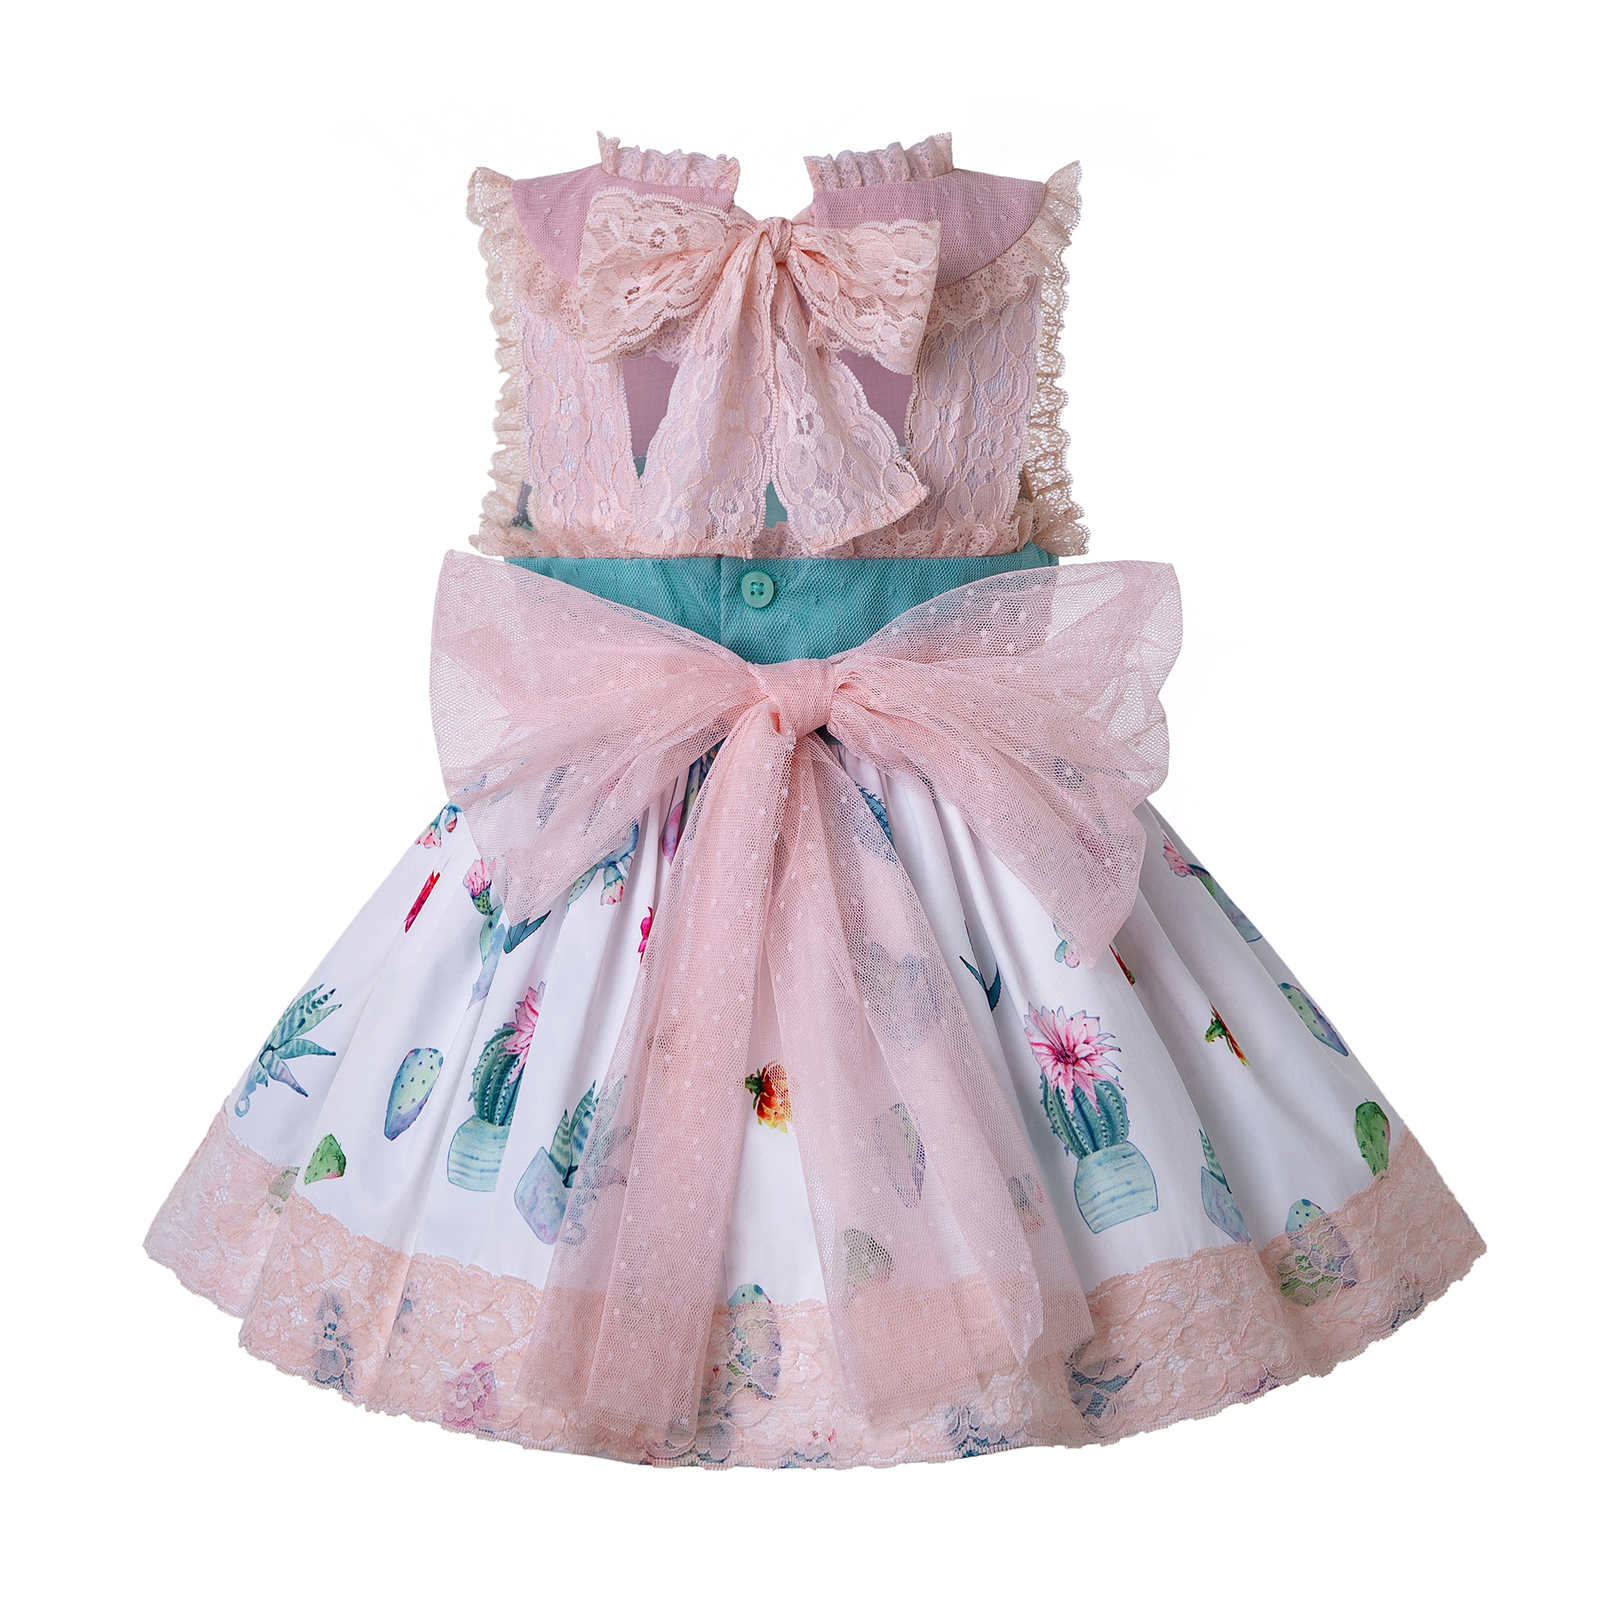 Baby Girls Bow  Lace Pearl Party First Communion Birthday Dress w// Bonnet ZG9